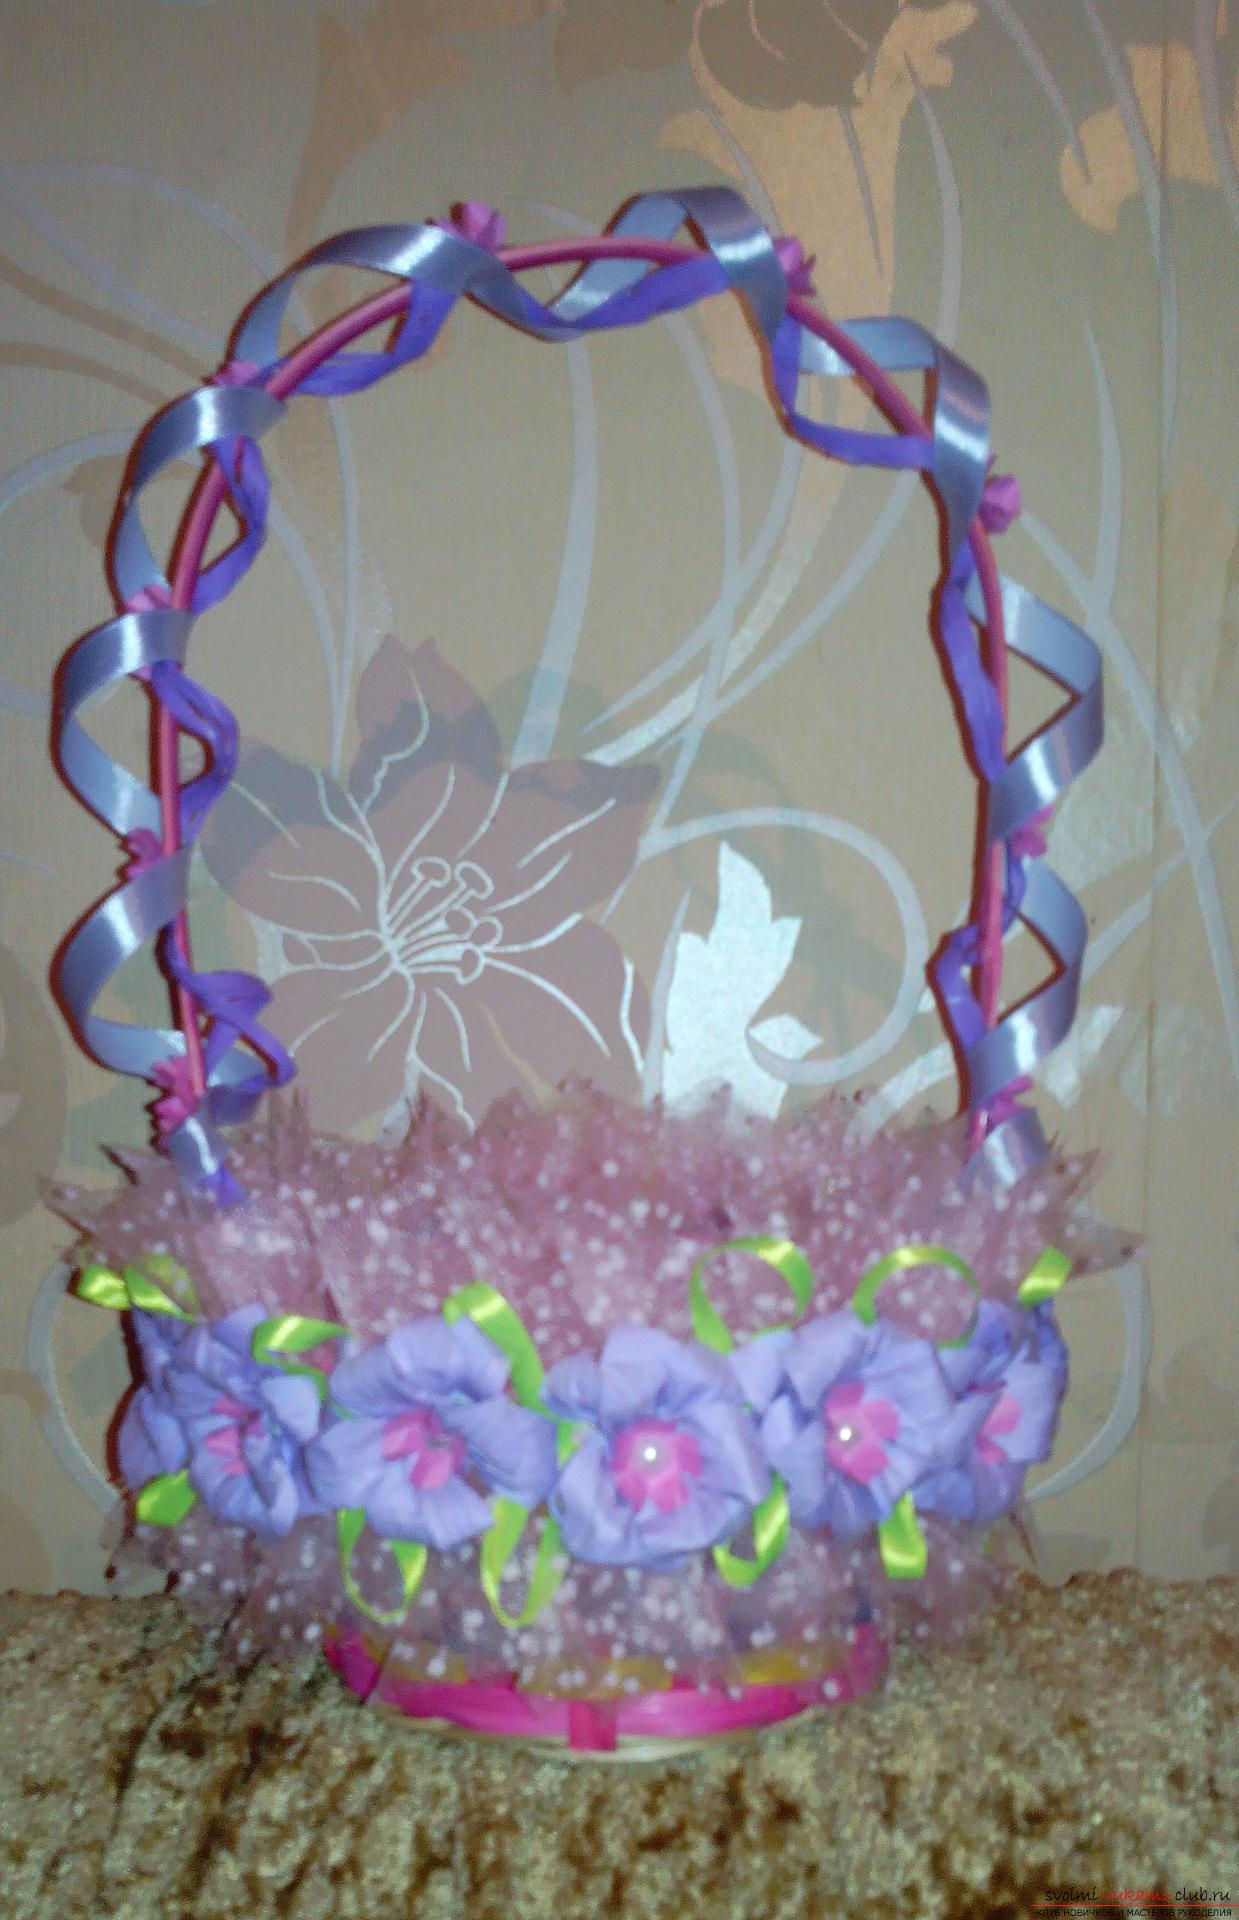 Baskets for a gift by March 8. Photo №4